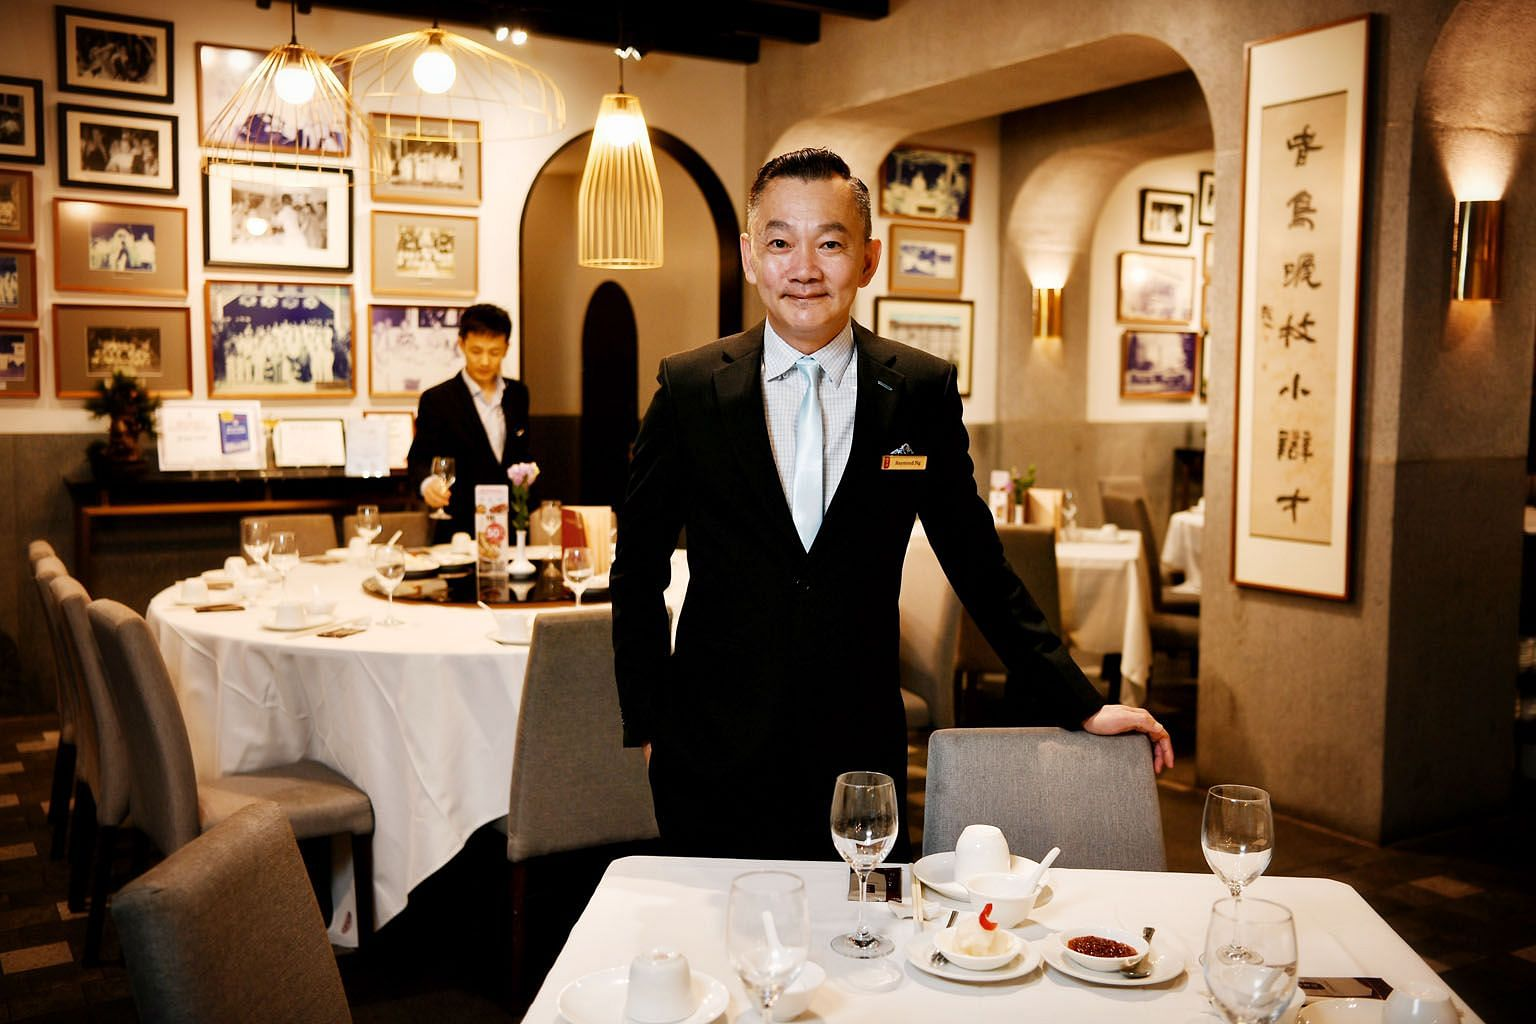 Spring Court Restaurant general manager Raymond Ng said he hopes to secure experienced part-timers through a new scheme which offers those who work at least four weekend shifts a month, and during peak periods, an additional 10 per cent of their pay